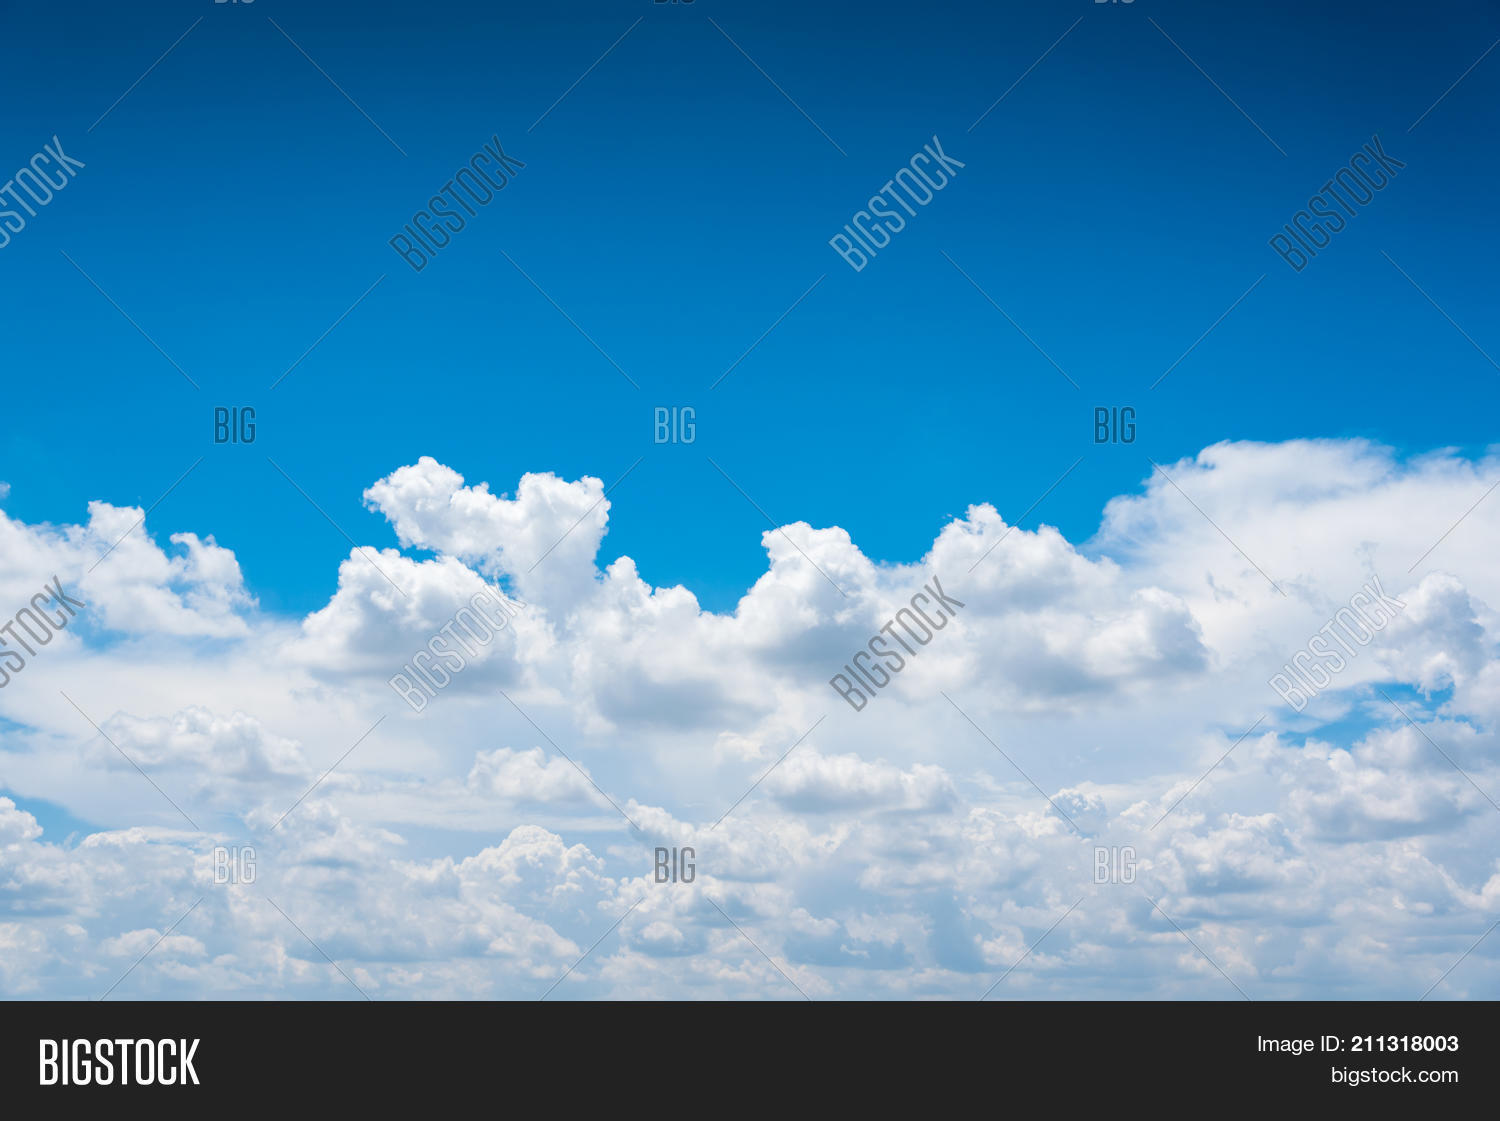 vast blue sky clouds image & photo (free trial) | bigstock